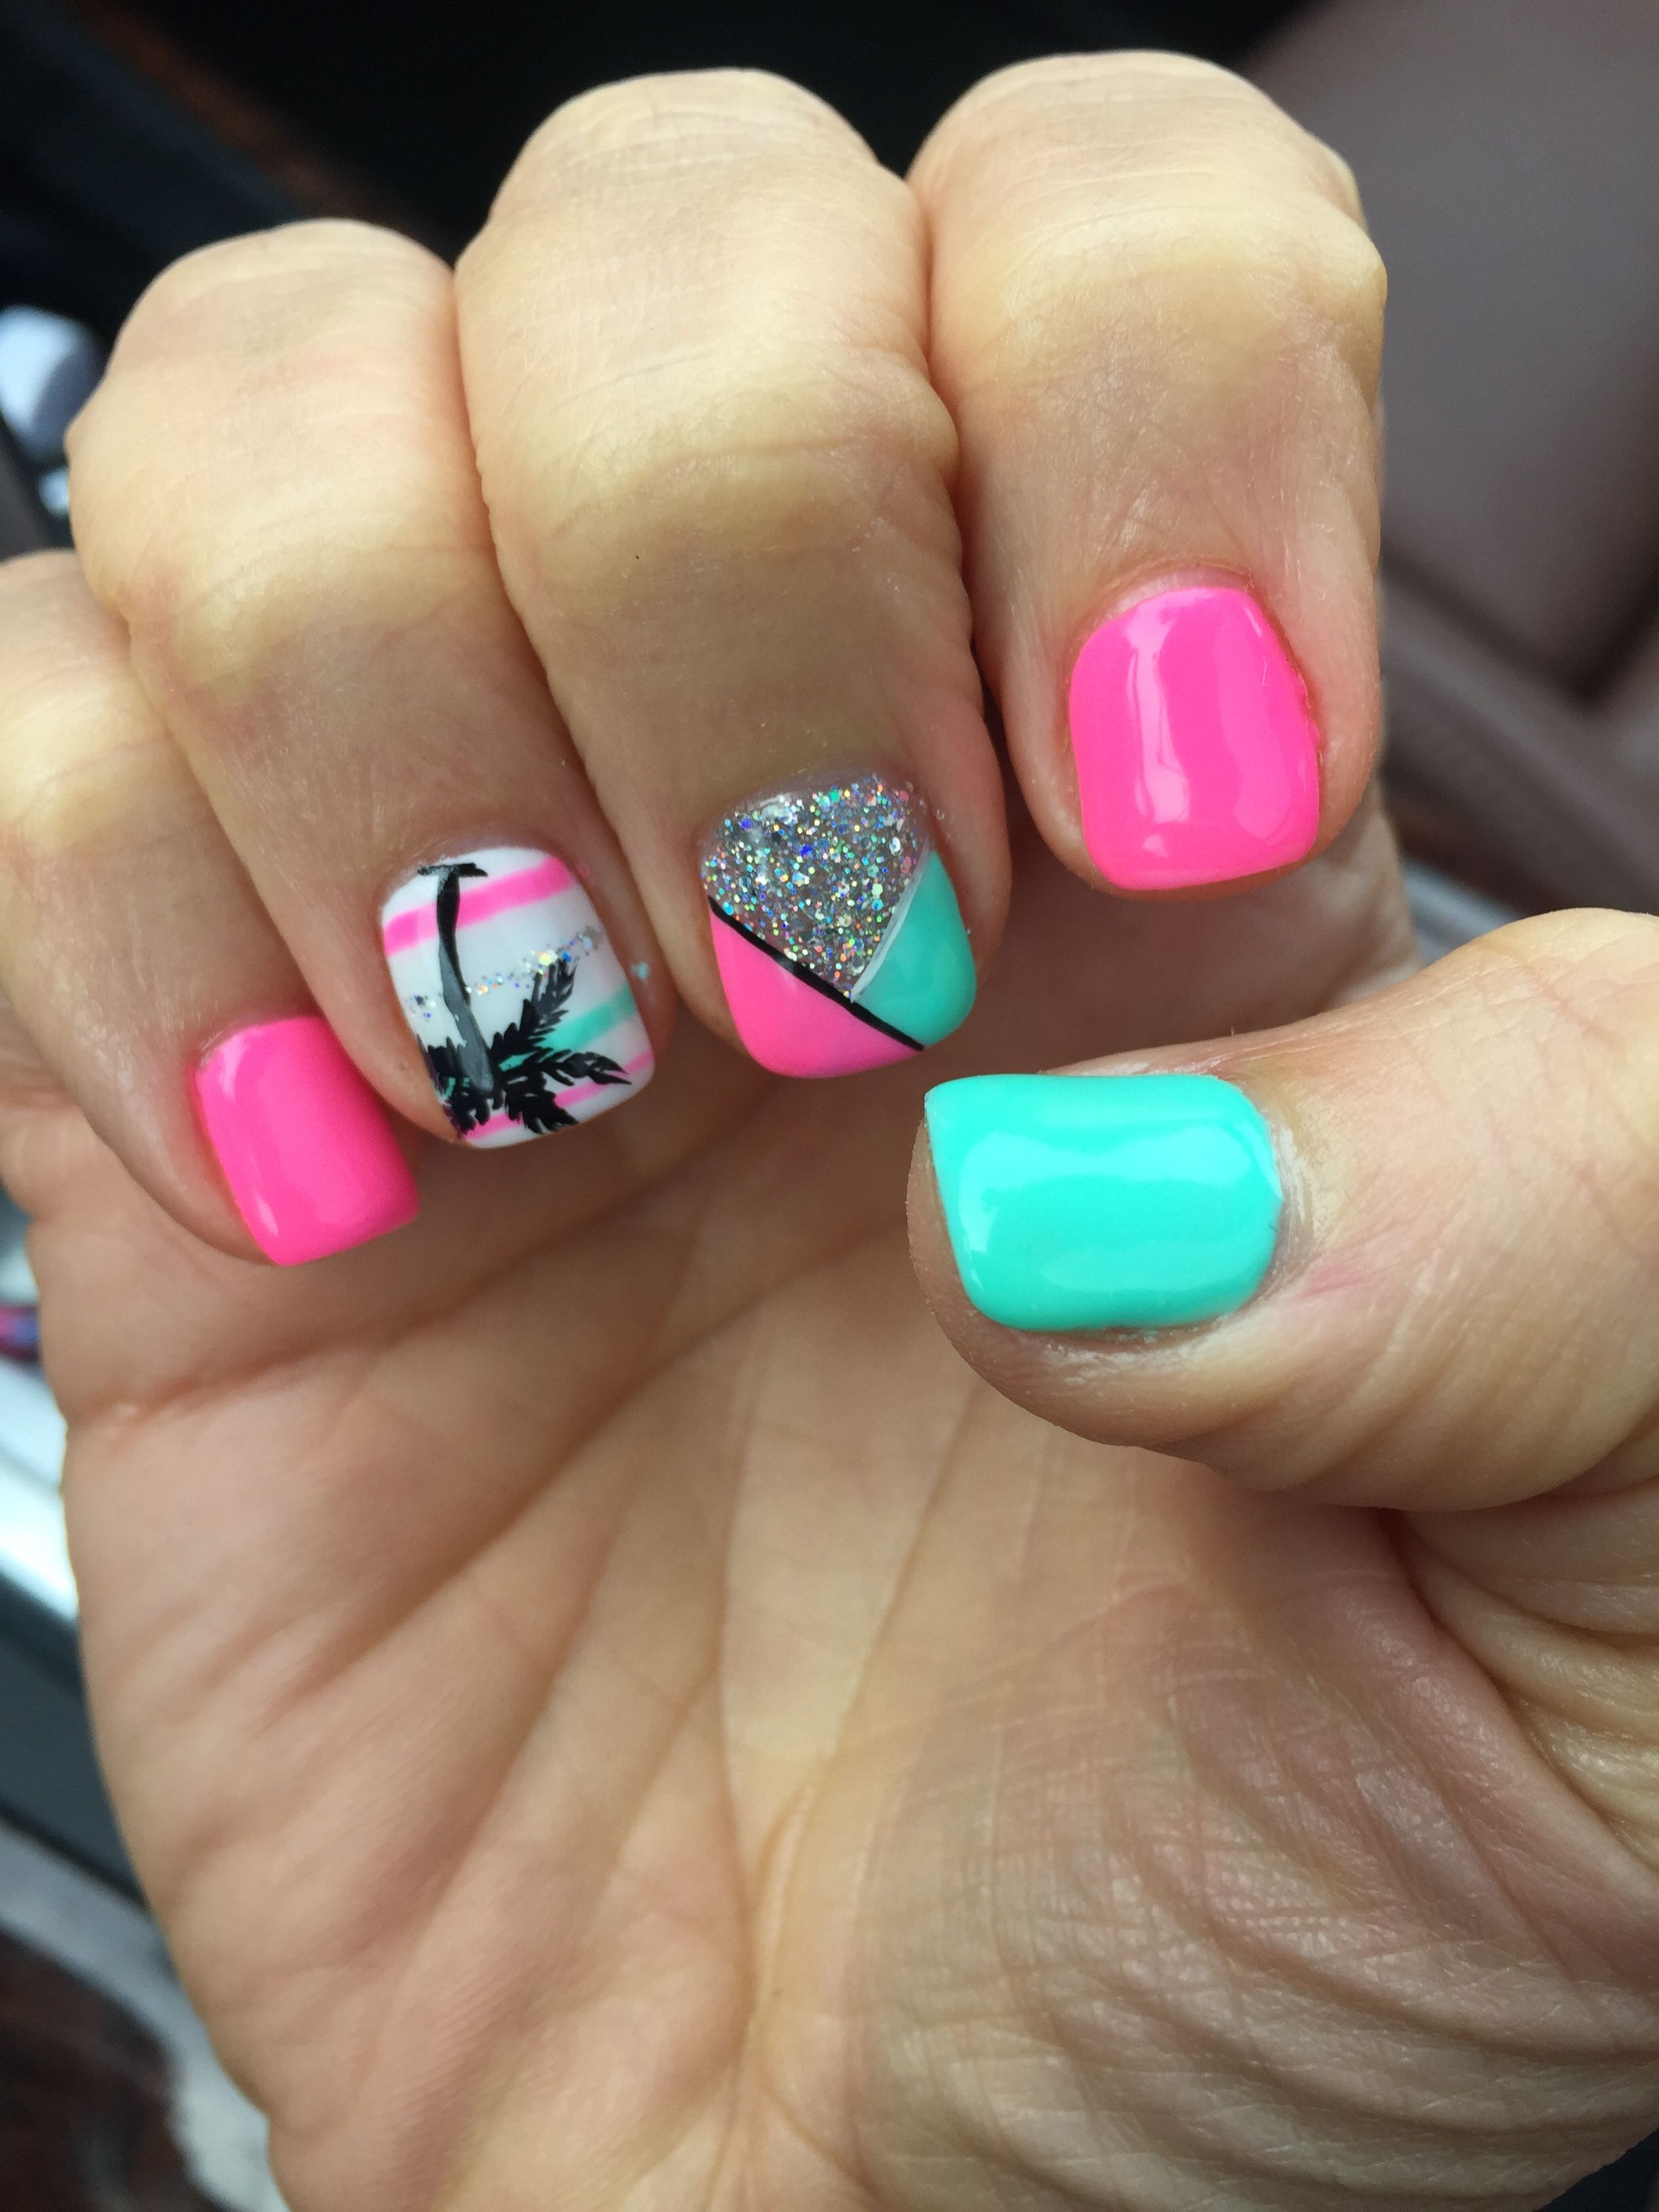 Tropical Vacation Nails Pink Teal Palm Tree Gel Shellac Mani Beach Nail Design